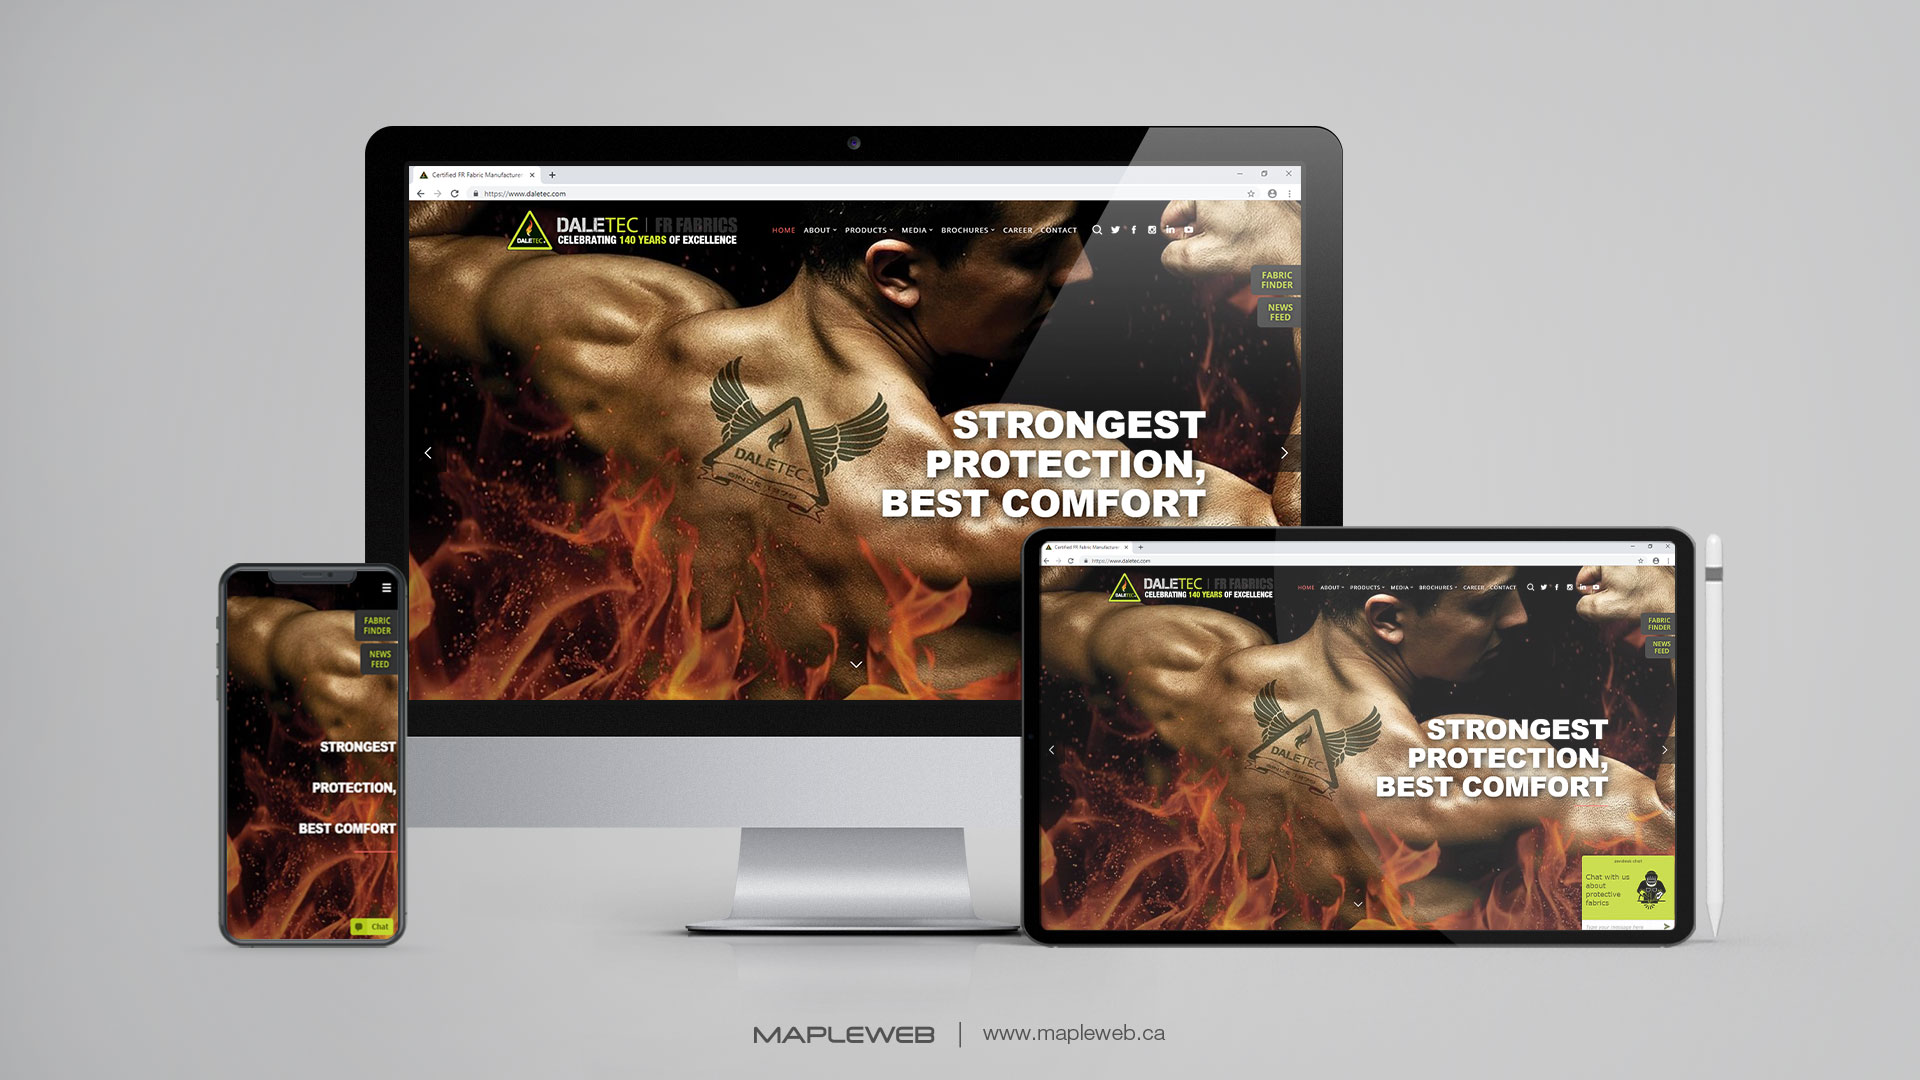 daletec-Vancouver-web-design-Vancouver-web-development-by-mapleweb-canada-multiple-devices-display